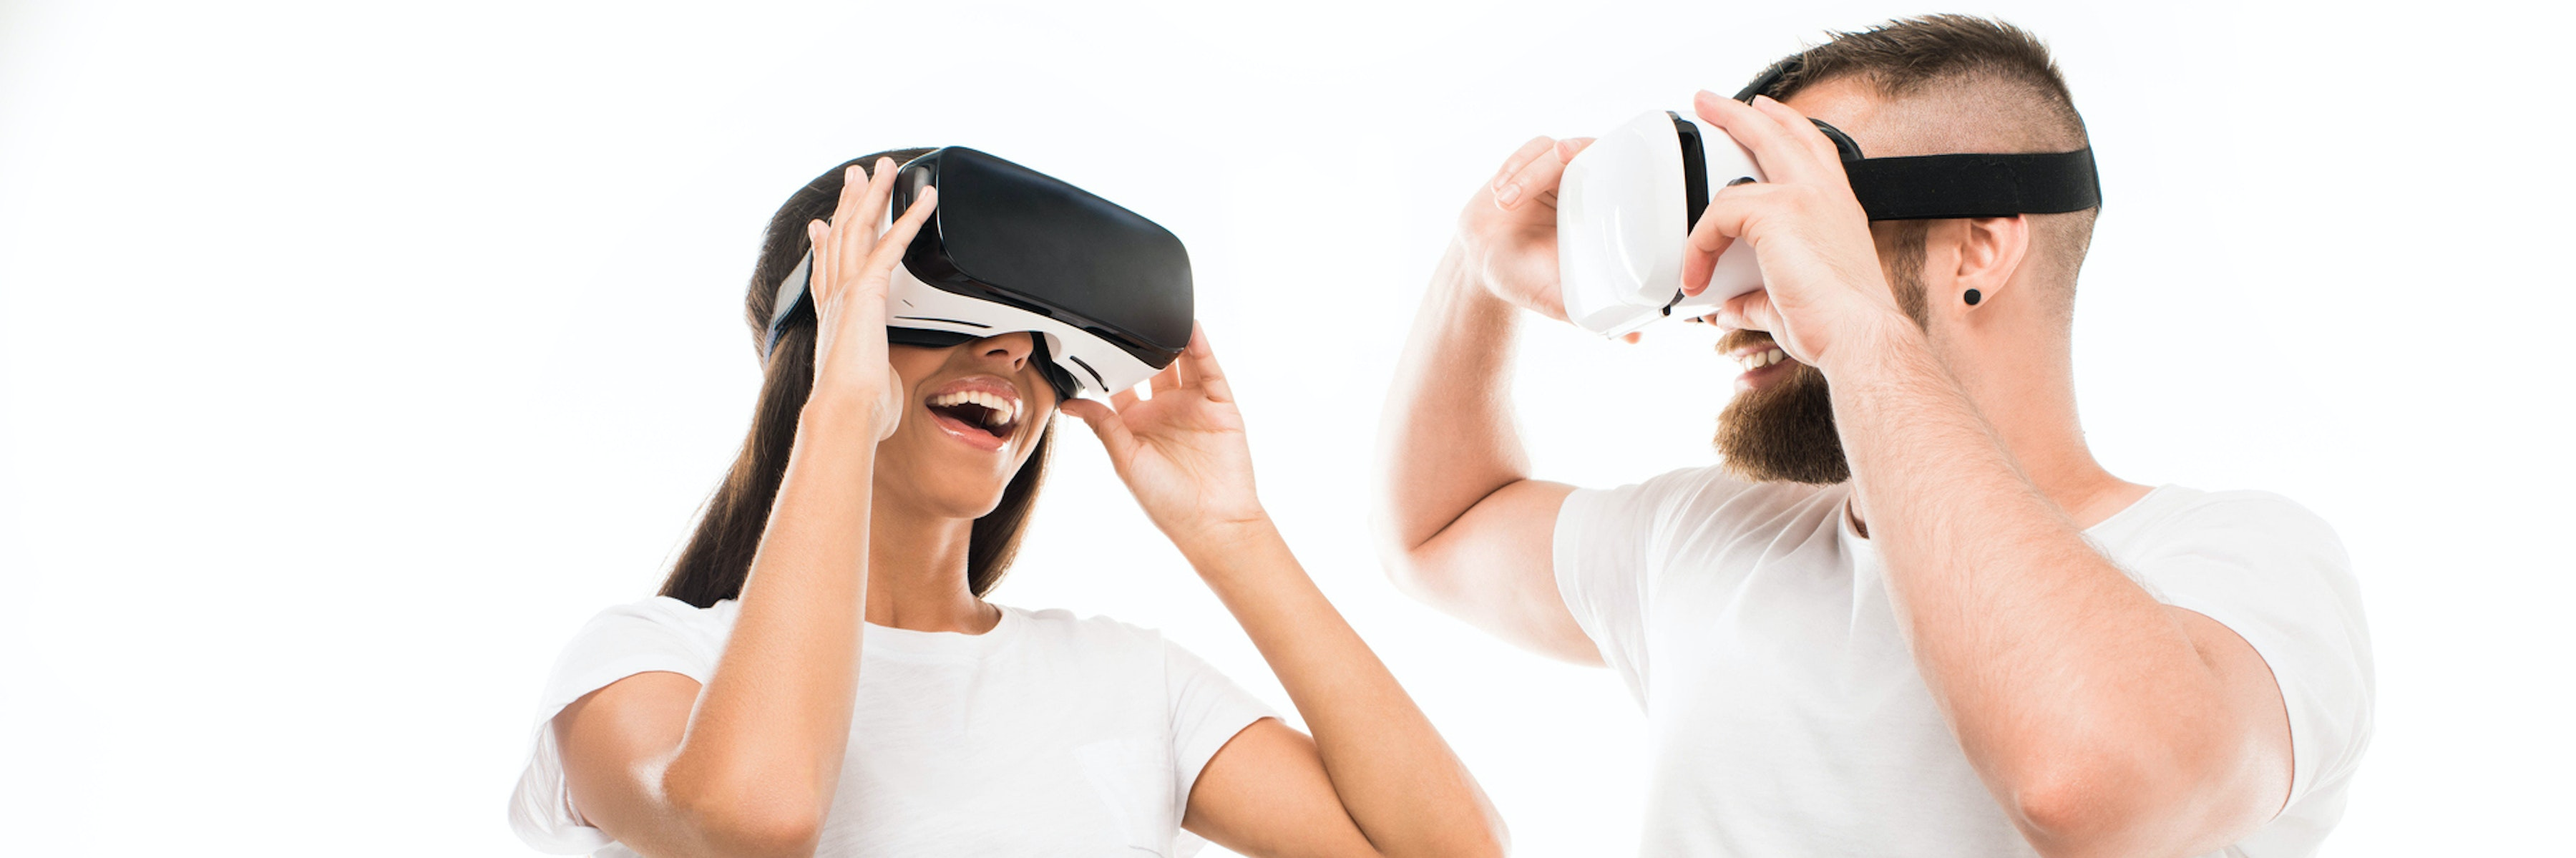 Sleeping in Virtual Reality What is Virtual Reality